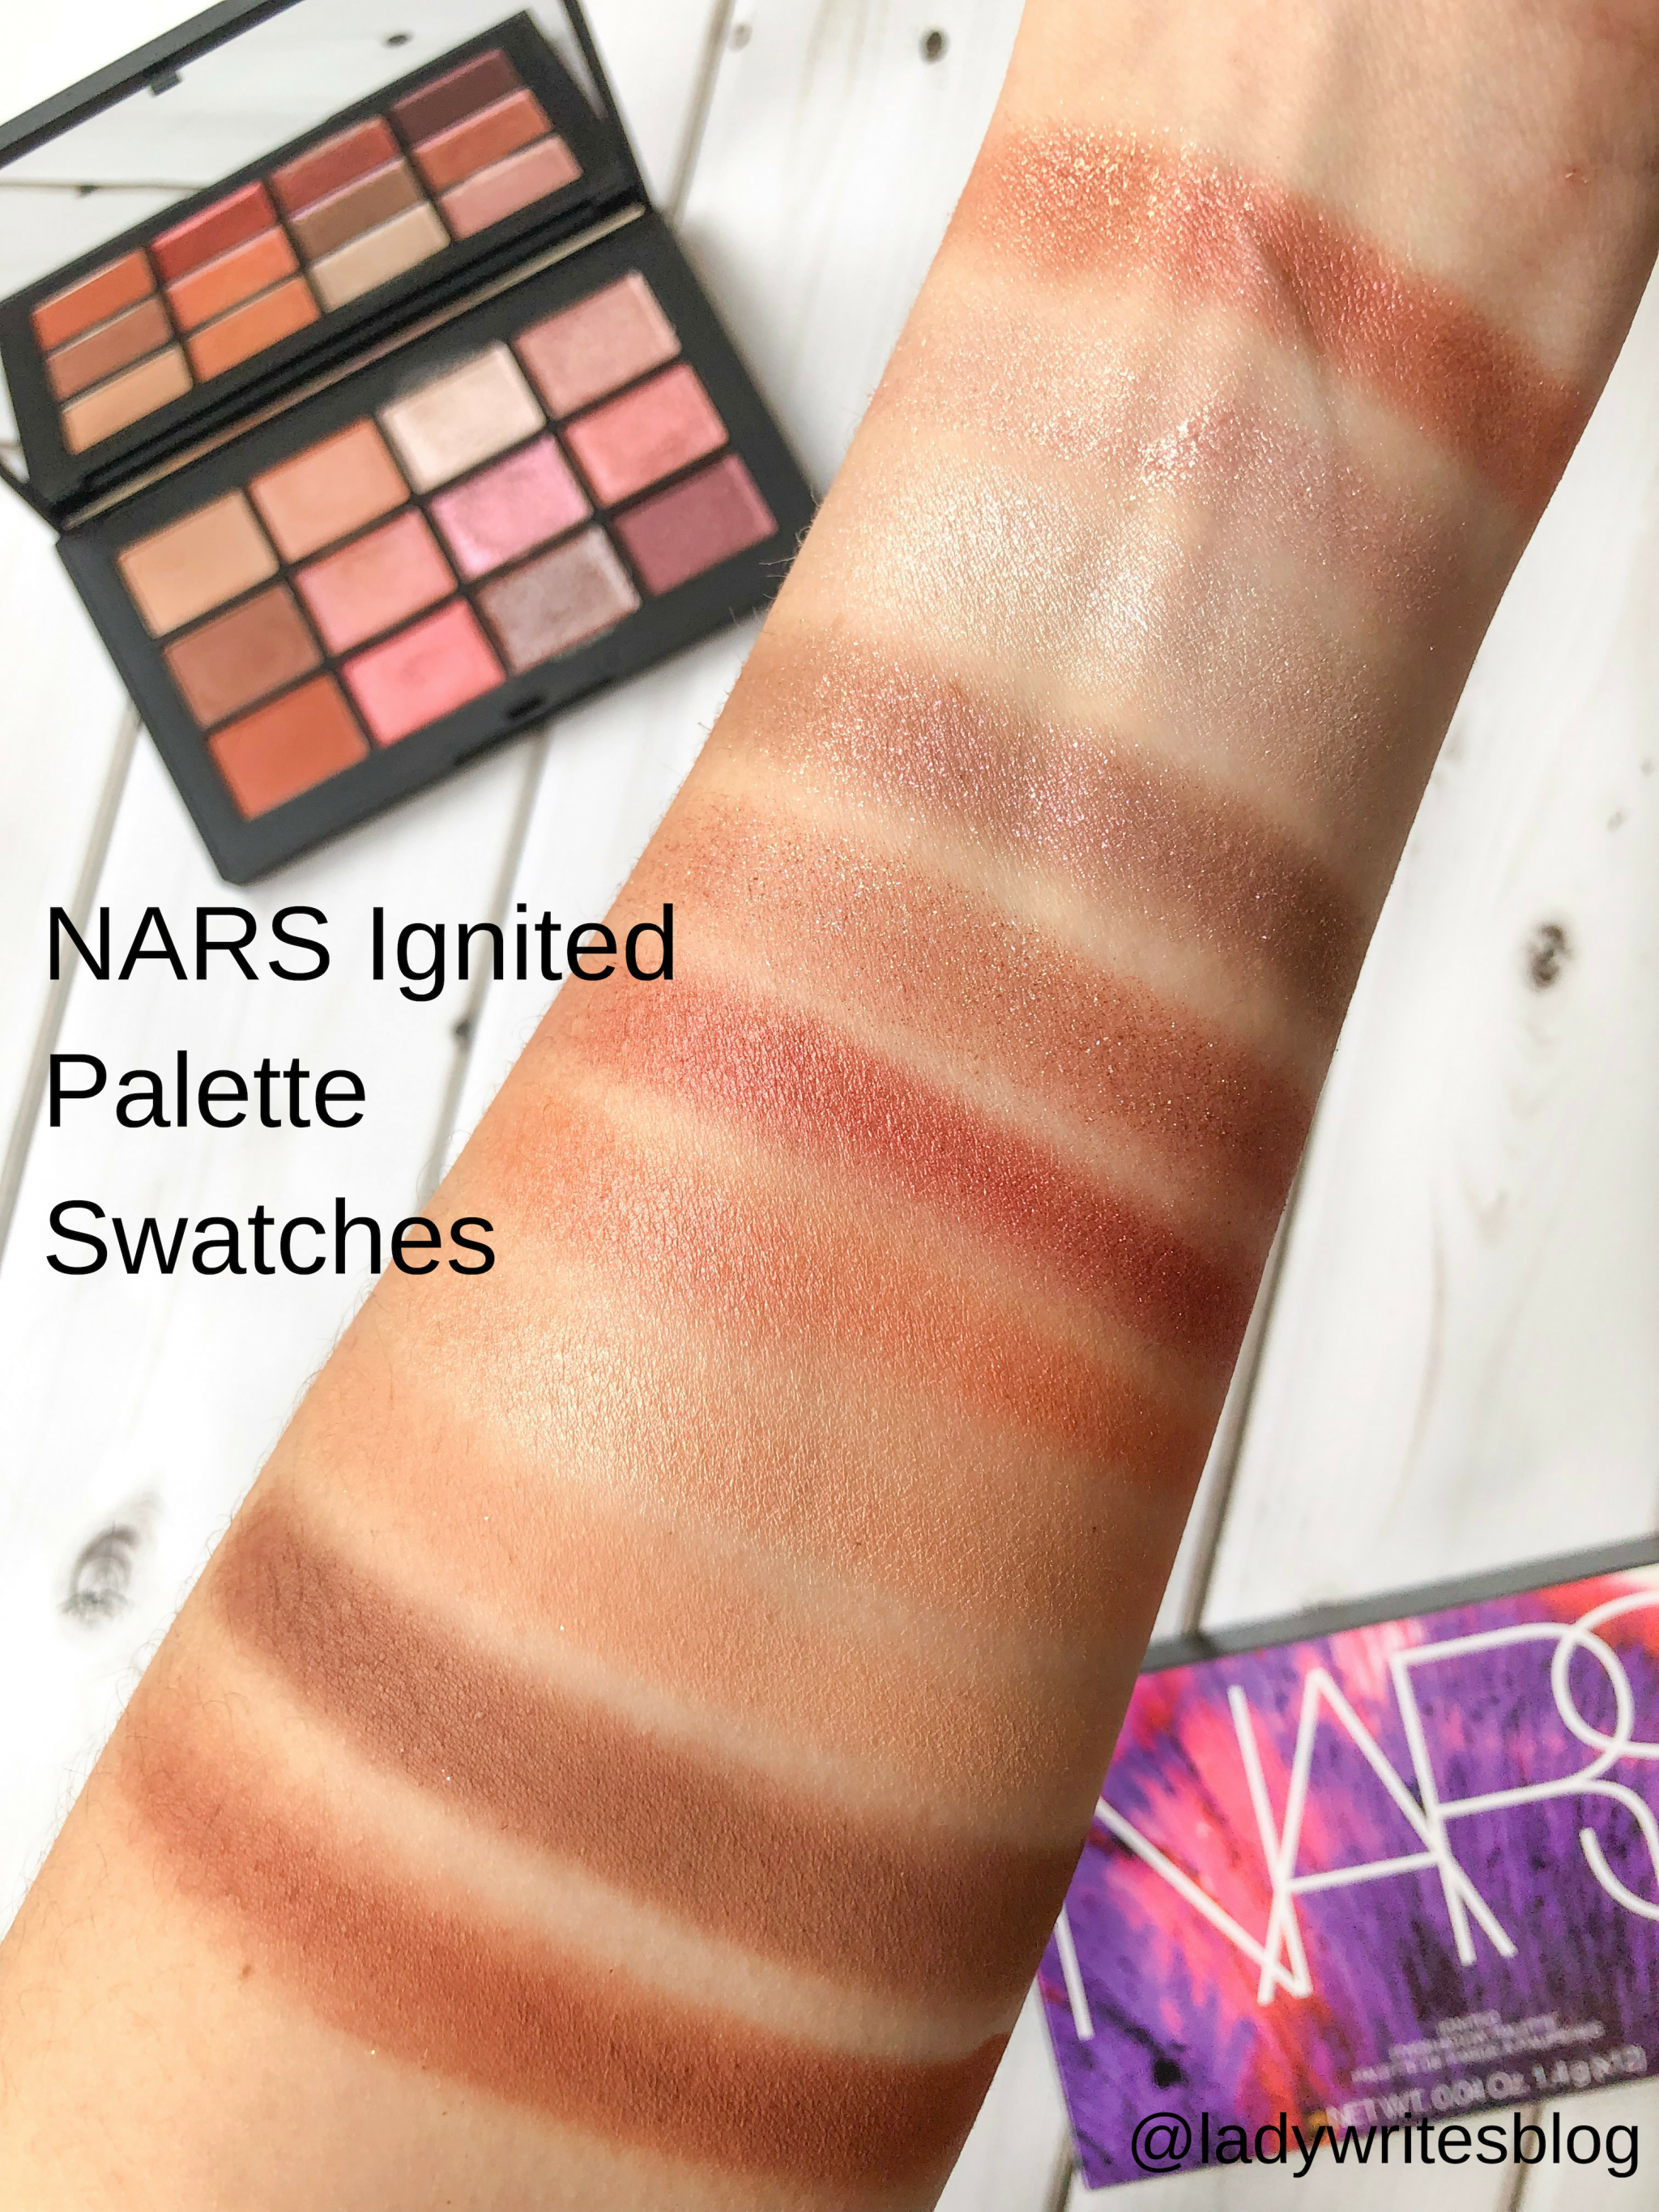 NARS Ignited Palette Swatches